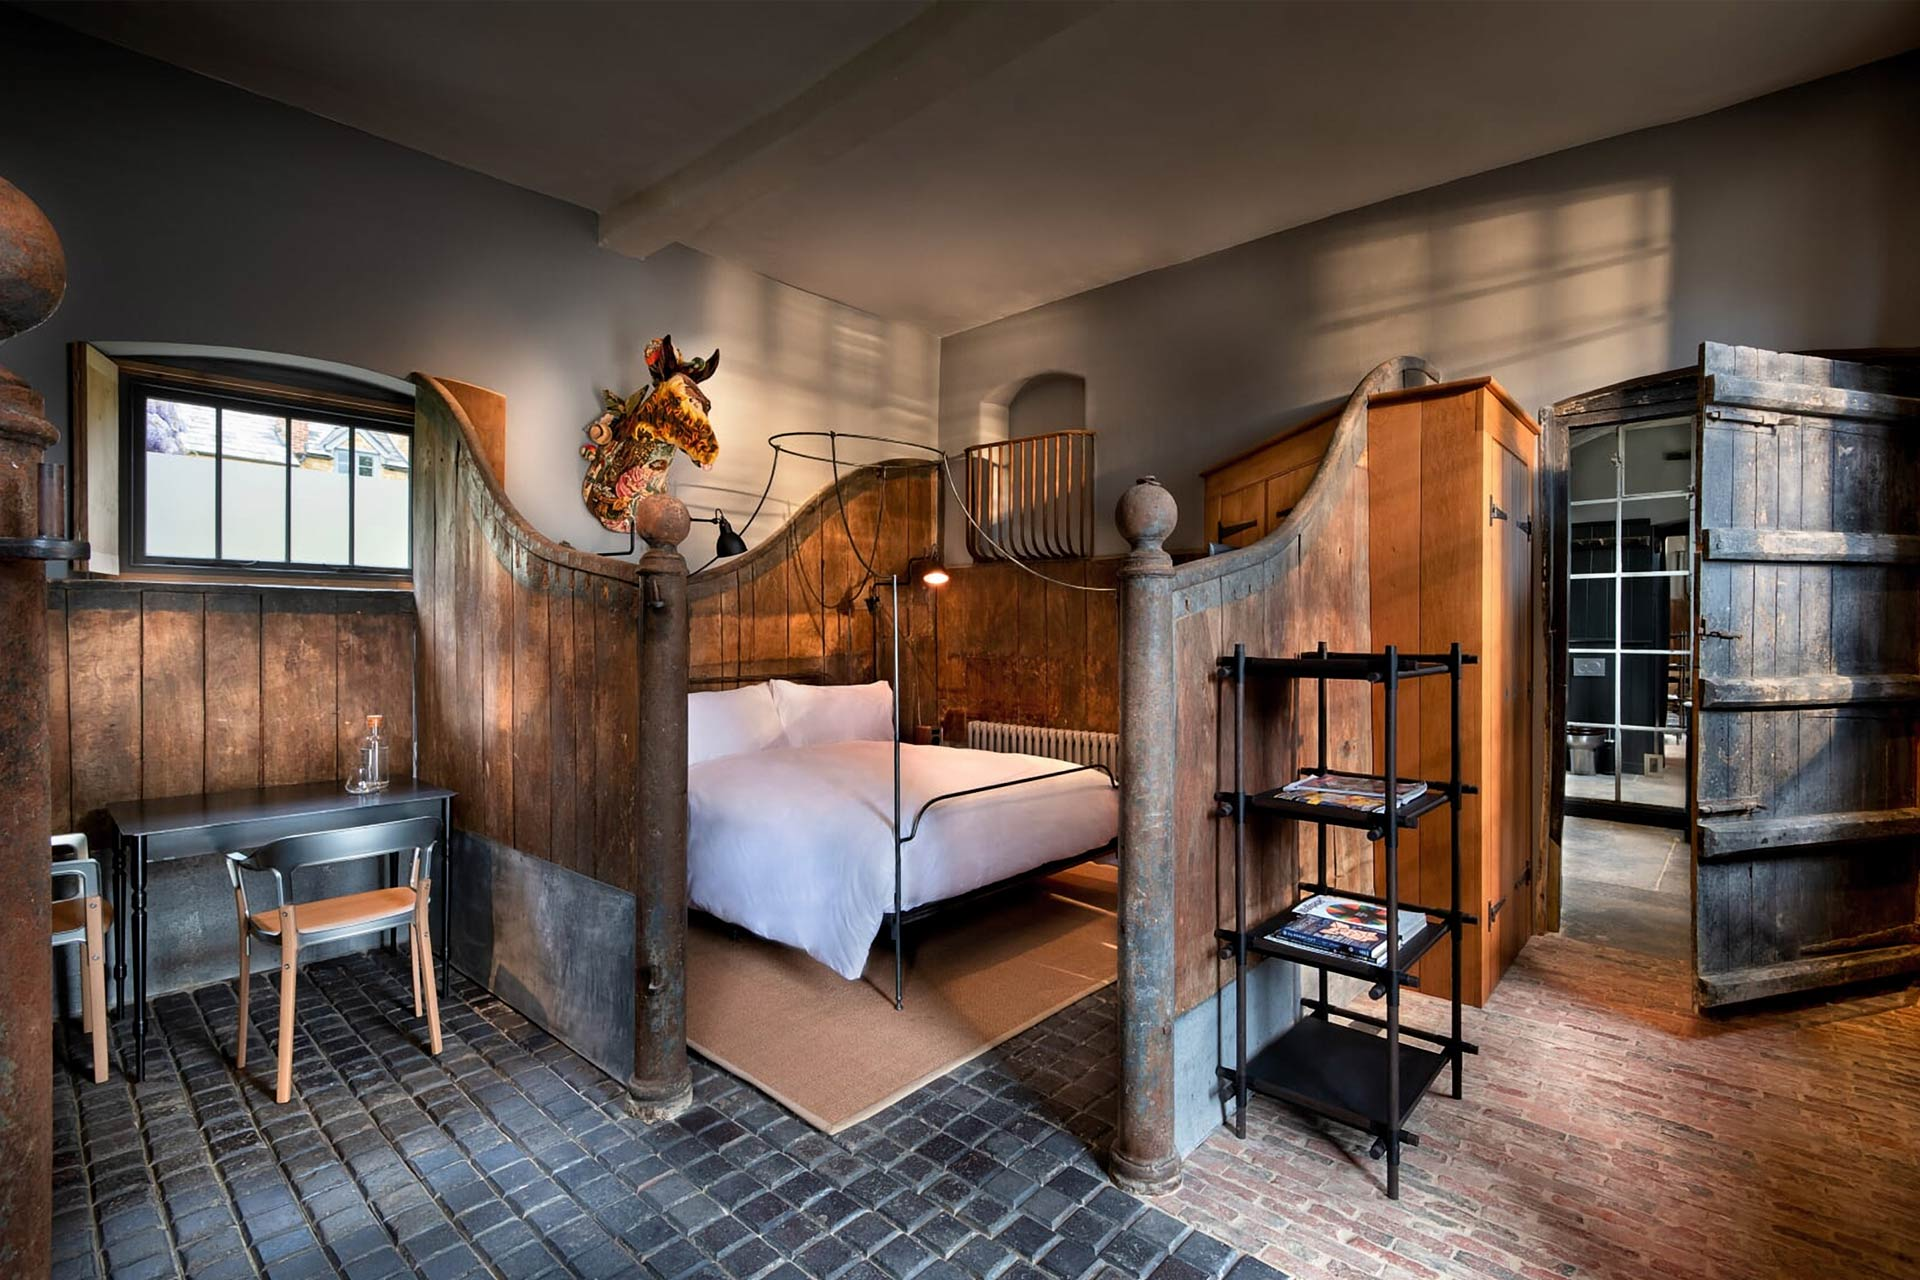 The Stable Room at The Newt in Somerset, England